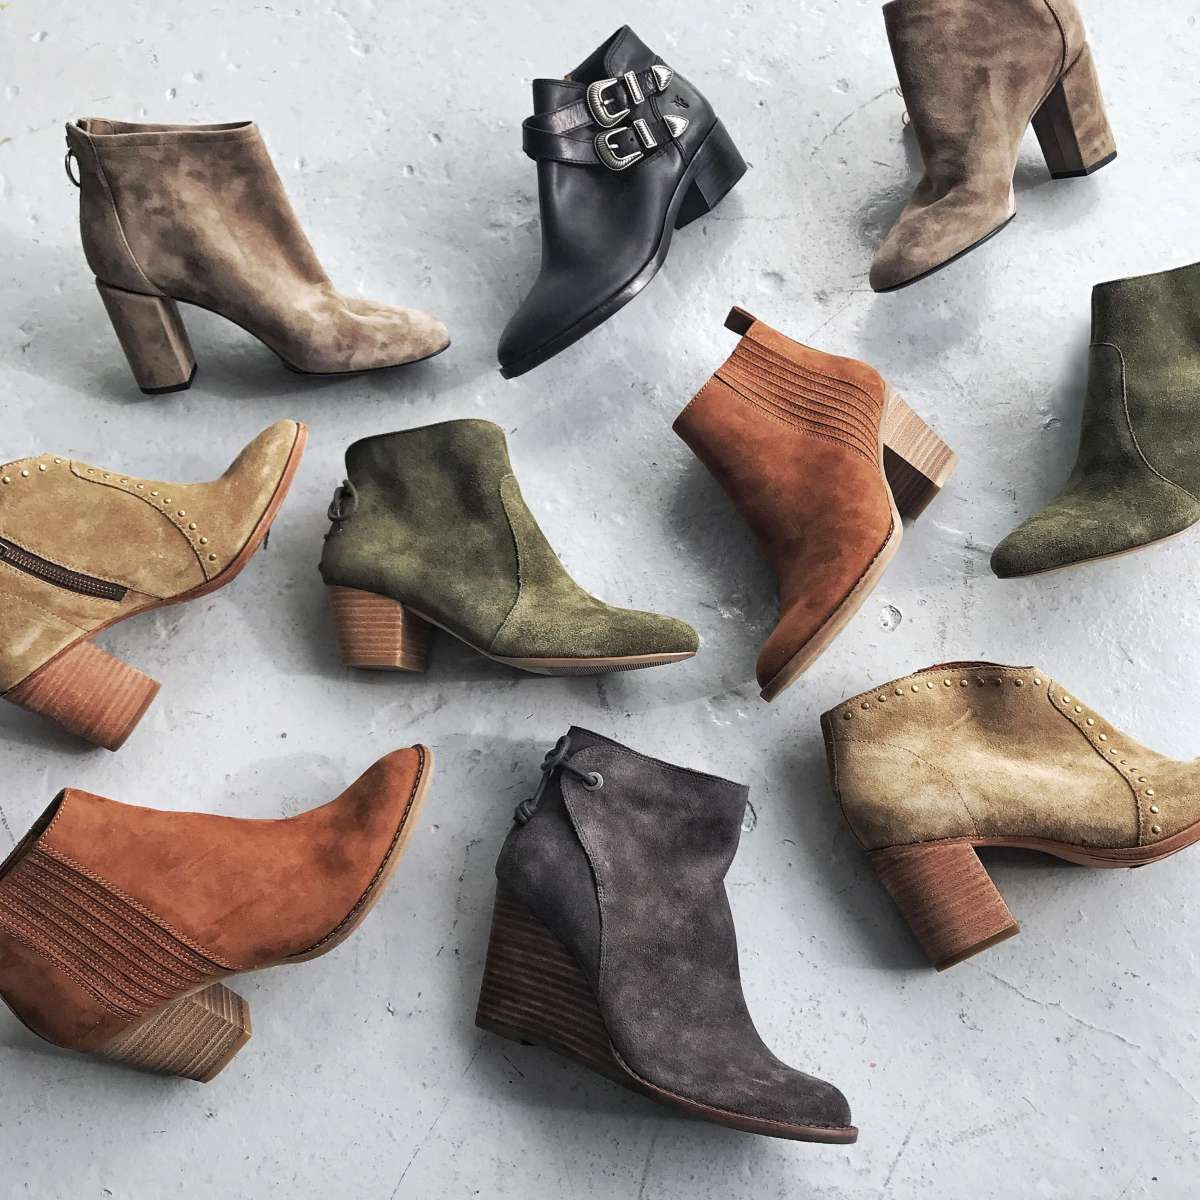 Perfect Pairings: How To Wear Boots With Jeans